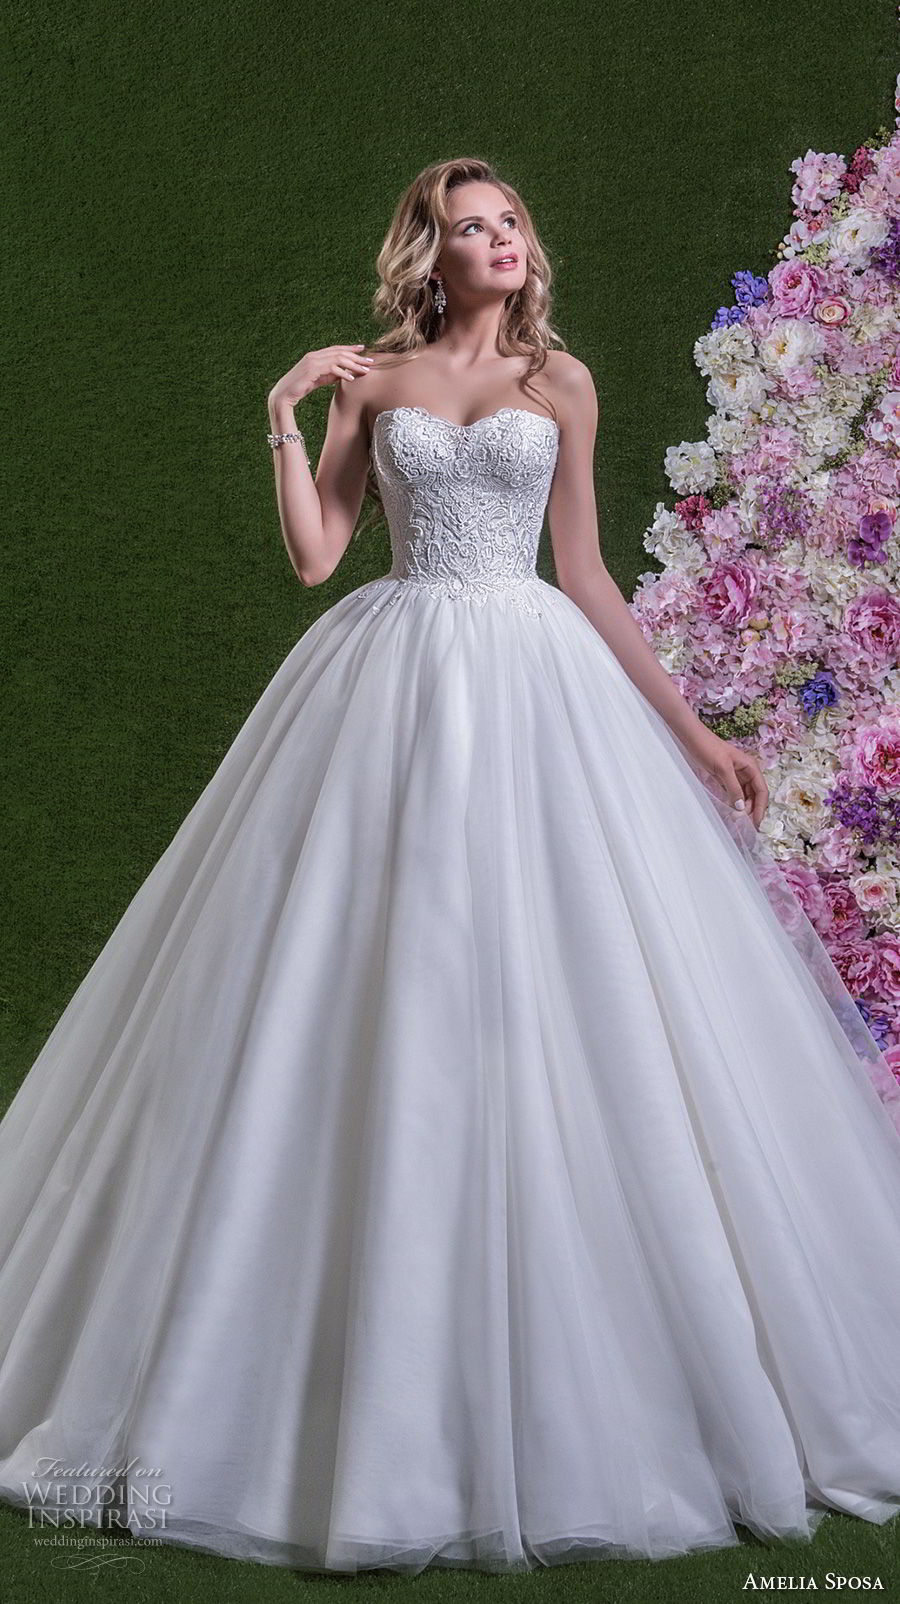 Amelia sposa wedding dresses where to buy